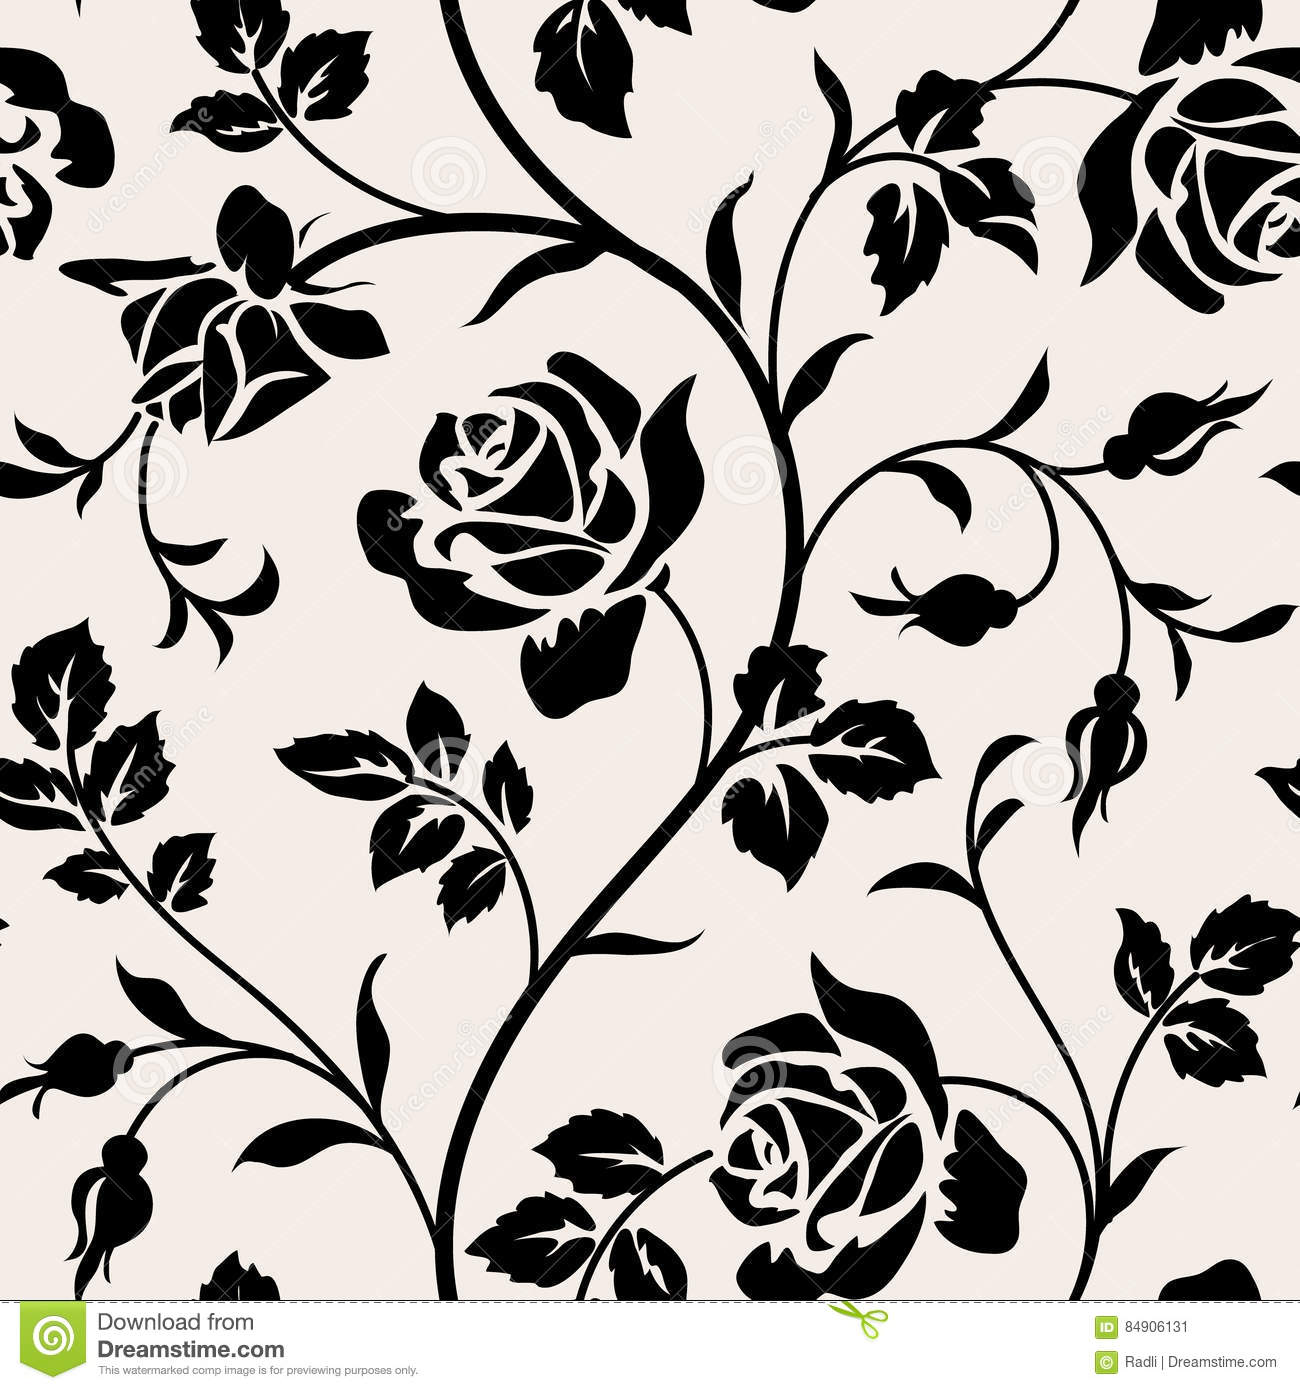 Black Flower Silhouette Pattern Royalty Free Stock Images: Vintage Wallpaper With Blooming Roses And Leaves.Floralm